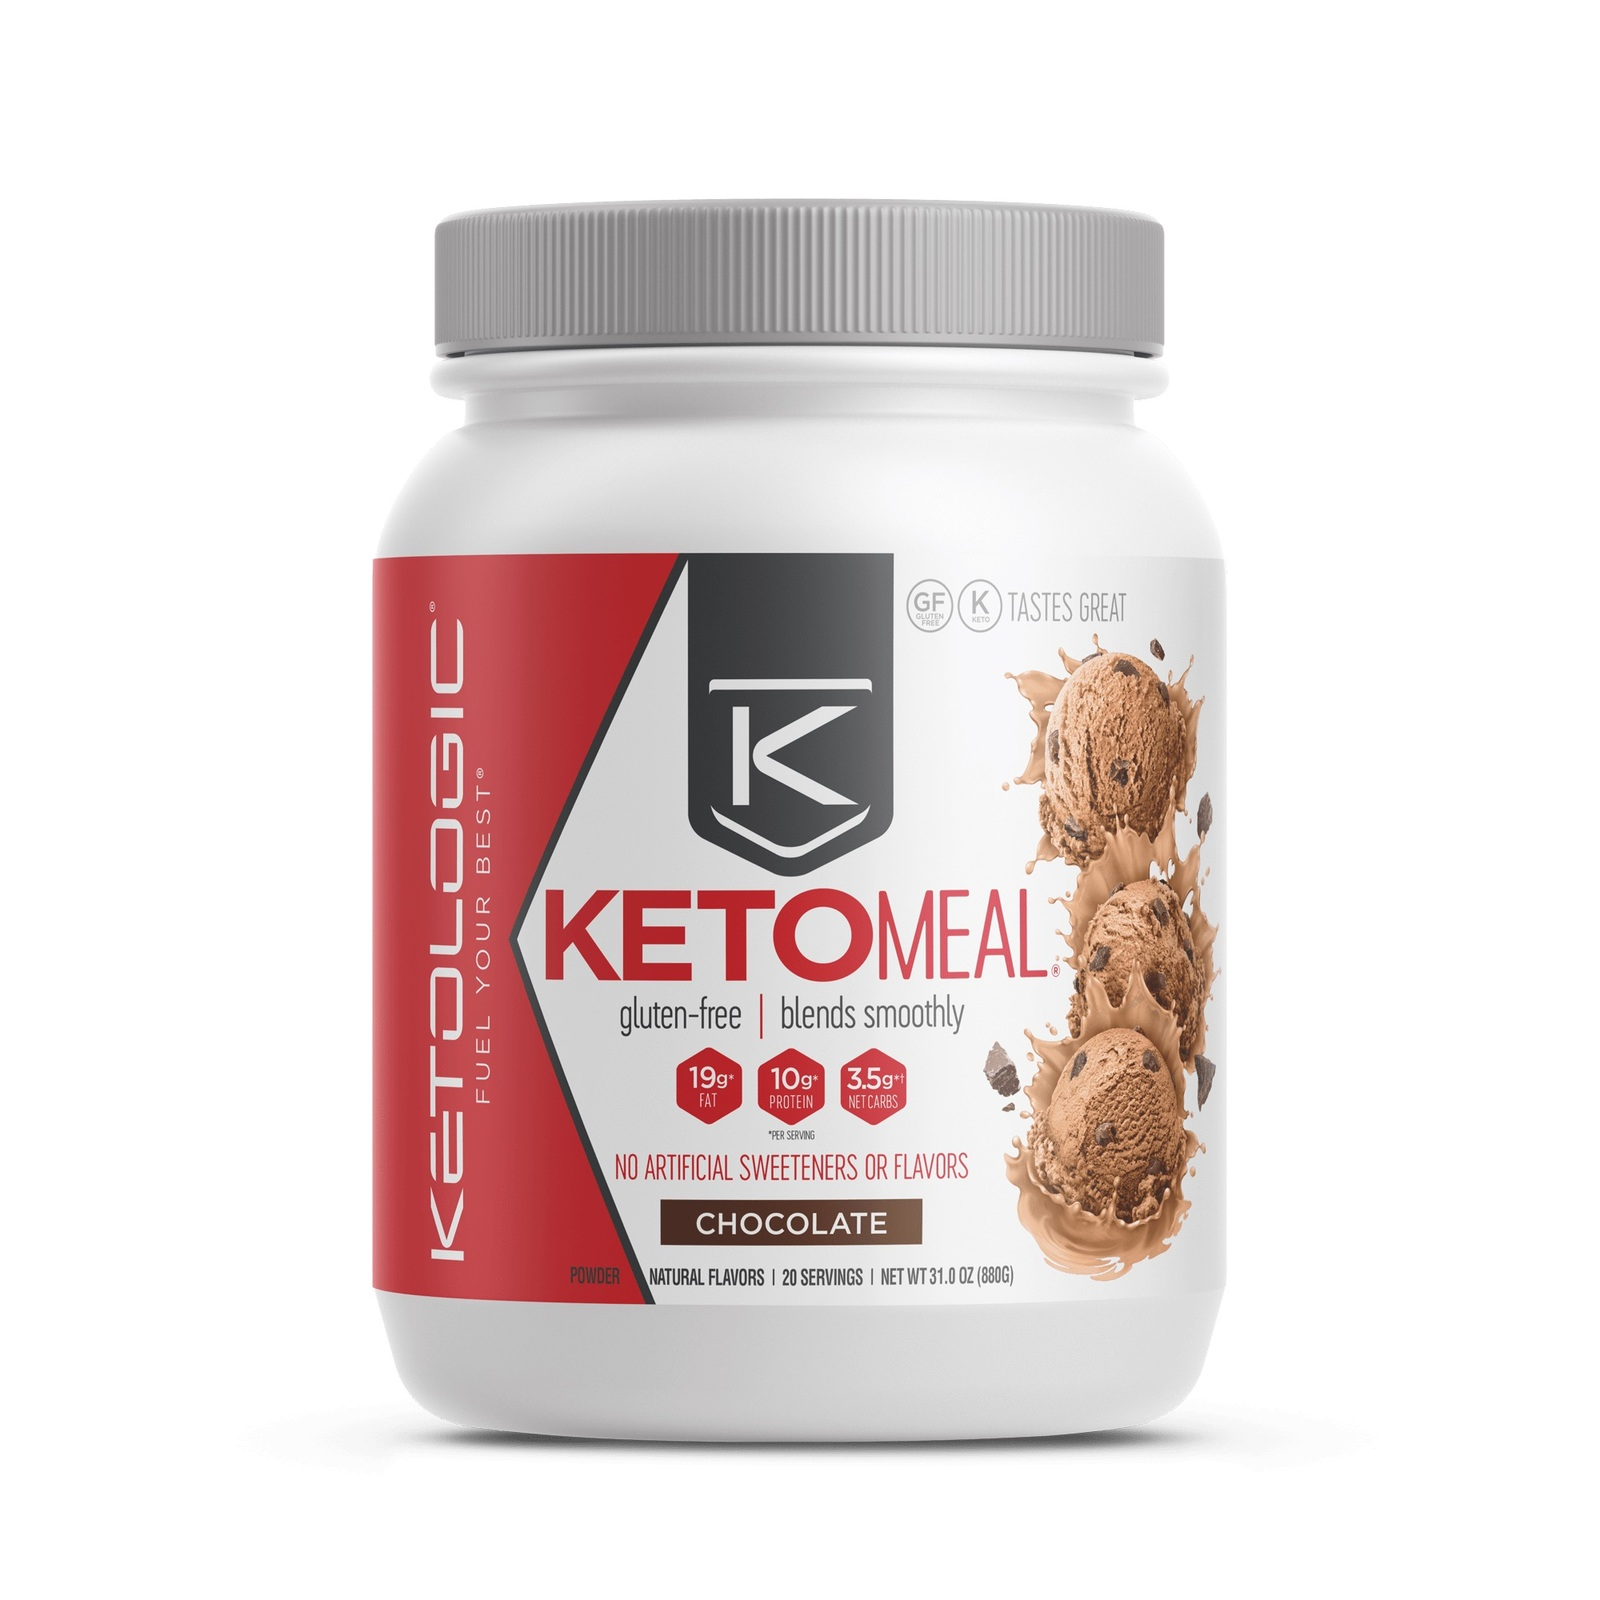 Ketologic: Keto Meal - Chocolate (16 Serves) image